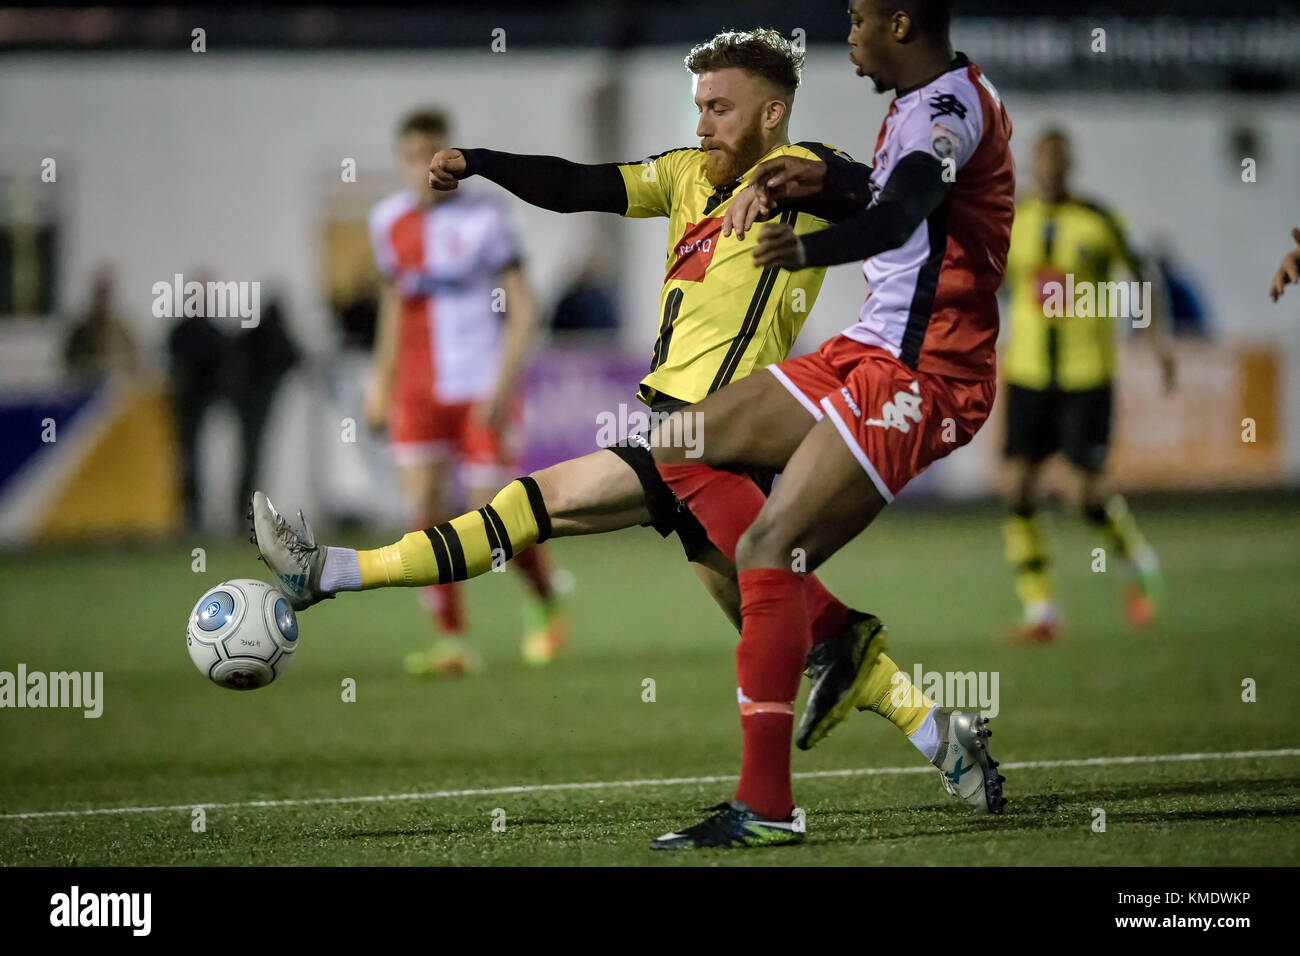 George Thomson (Harrogate Town) challenges for the ball during the National League North game against Kidderminster Stock Photo